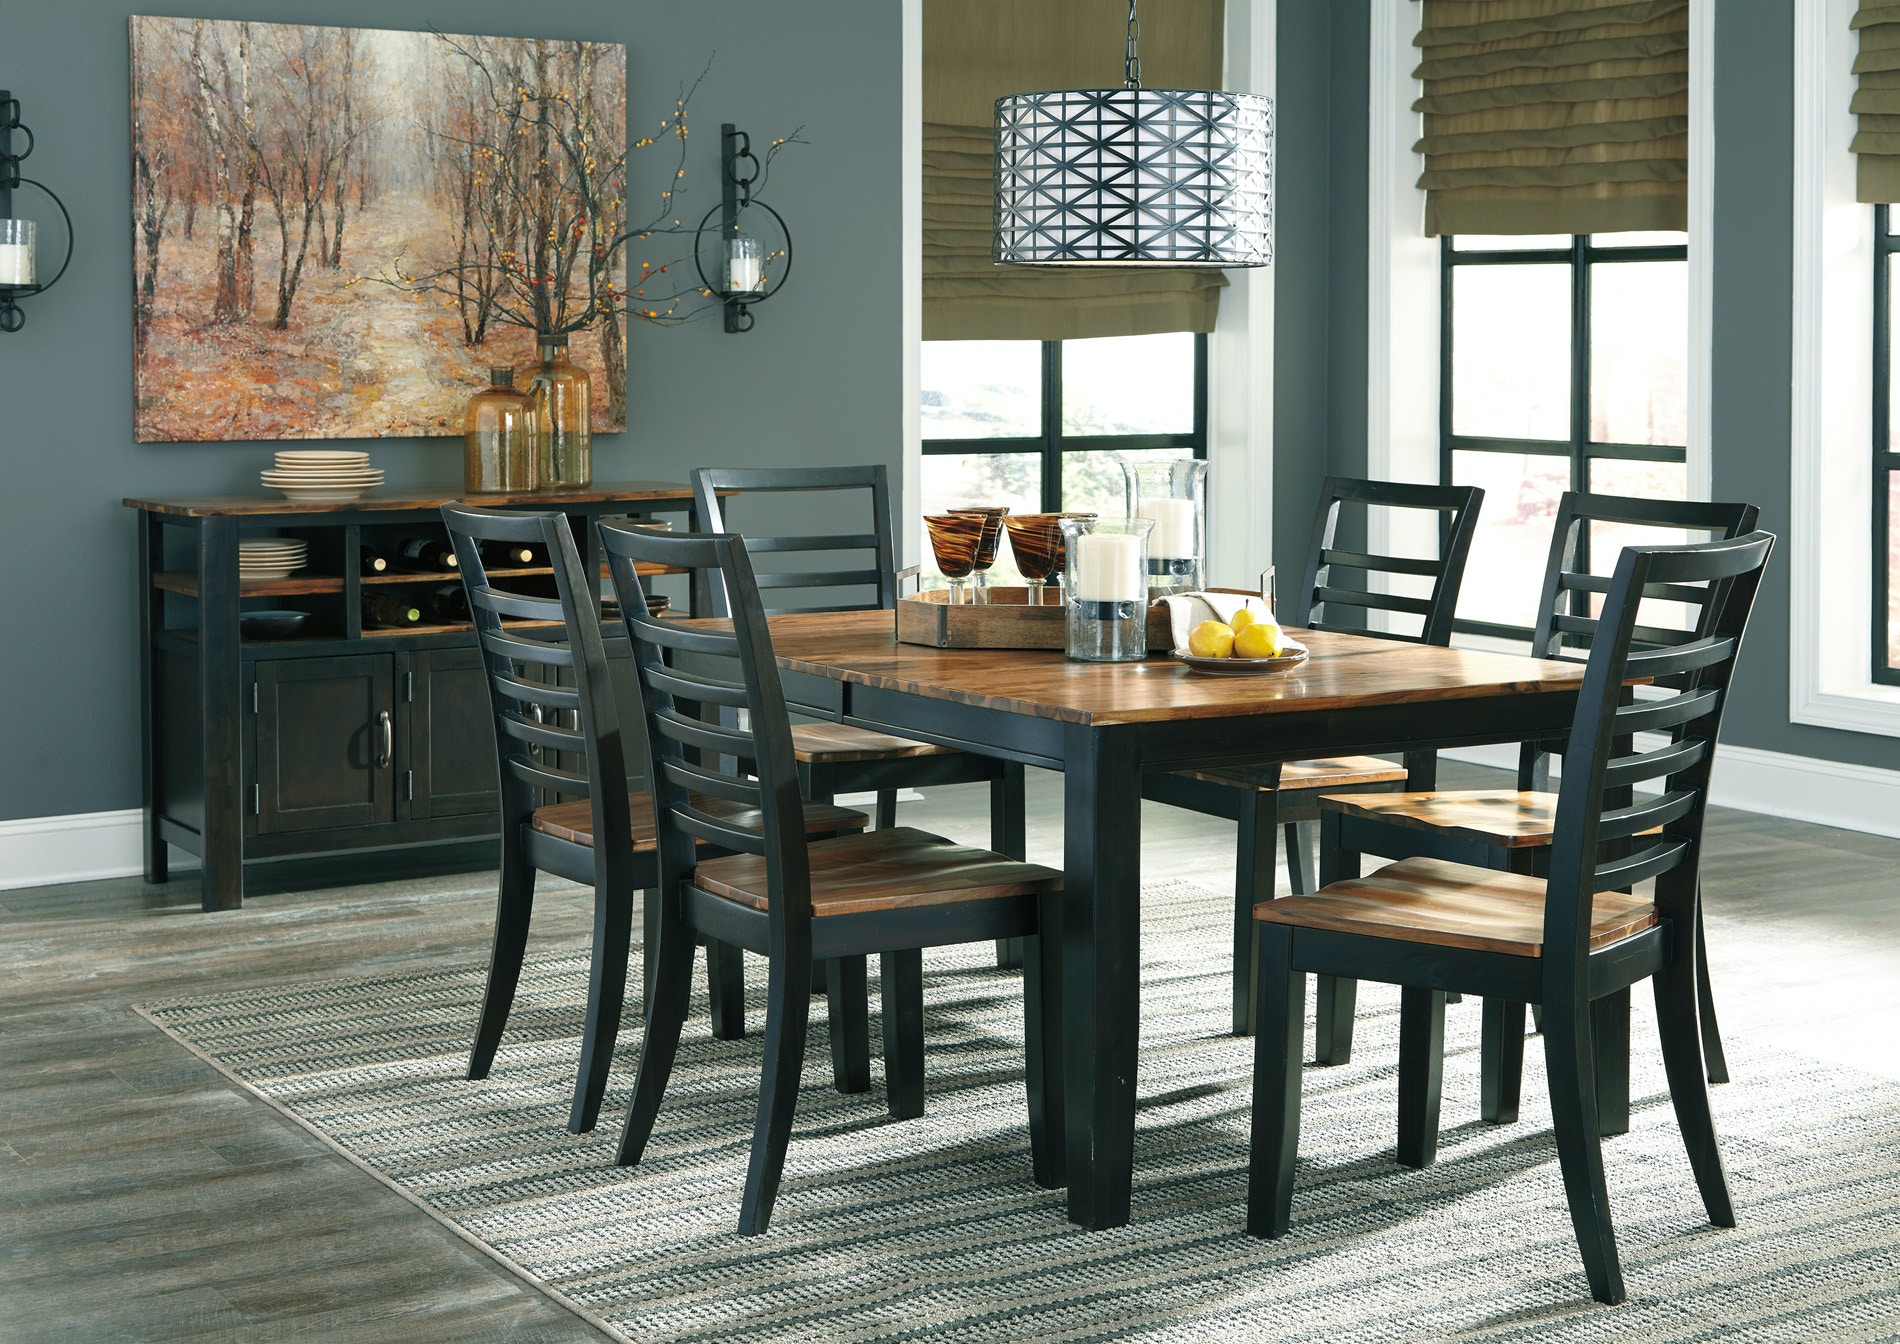 Beautiful Ashley Dining Room Table Ideas Home Design  : quinley3 from degnerfordelegate.com size 1900 x 1344 jpeg 401kB